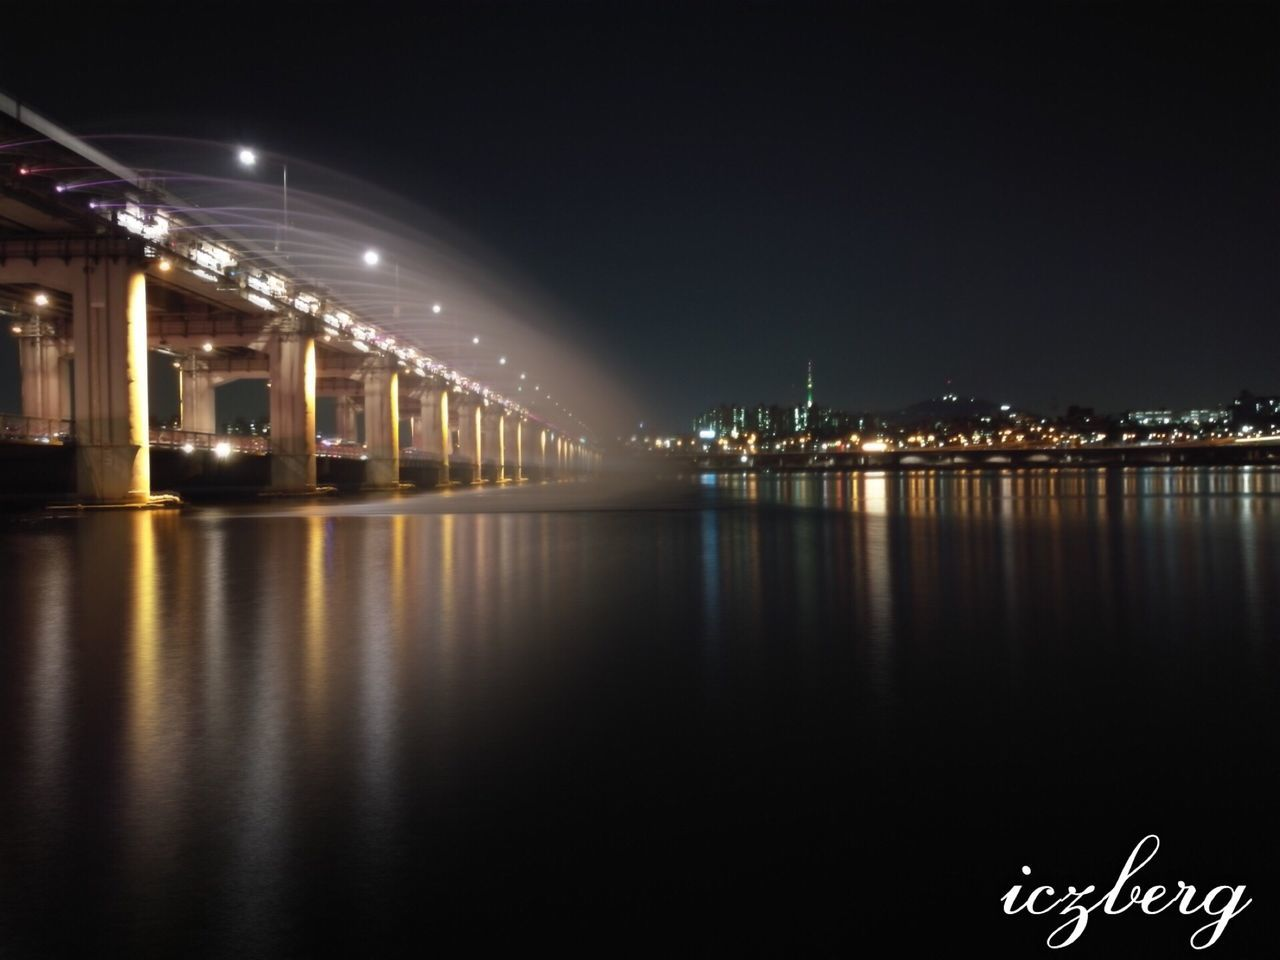 Banpo bridge Banpo Bridge Banpobridge Banpodaegyo Seoul South Korea River River View Reflect Reflectivelight Reflection Waterworks Fountain Spring